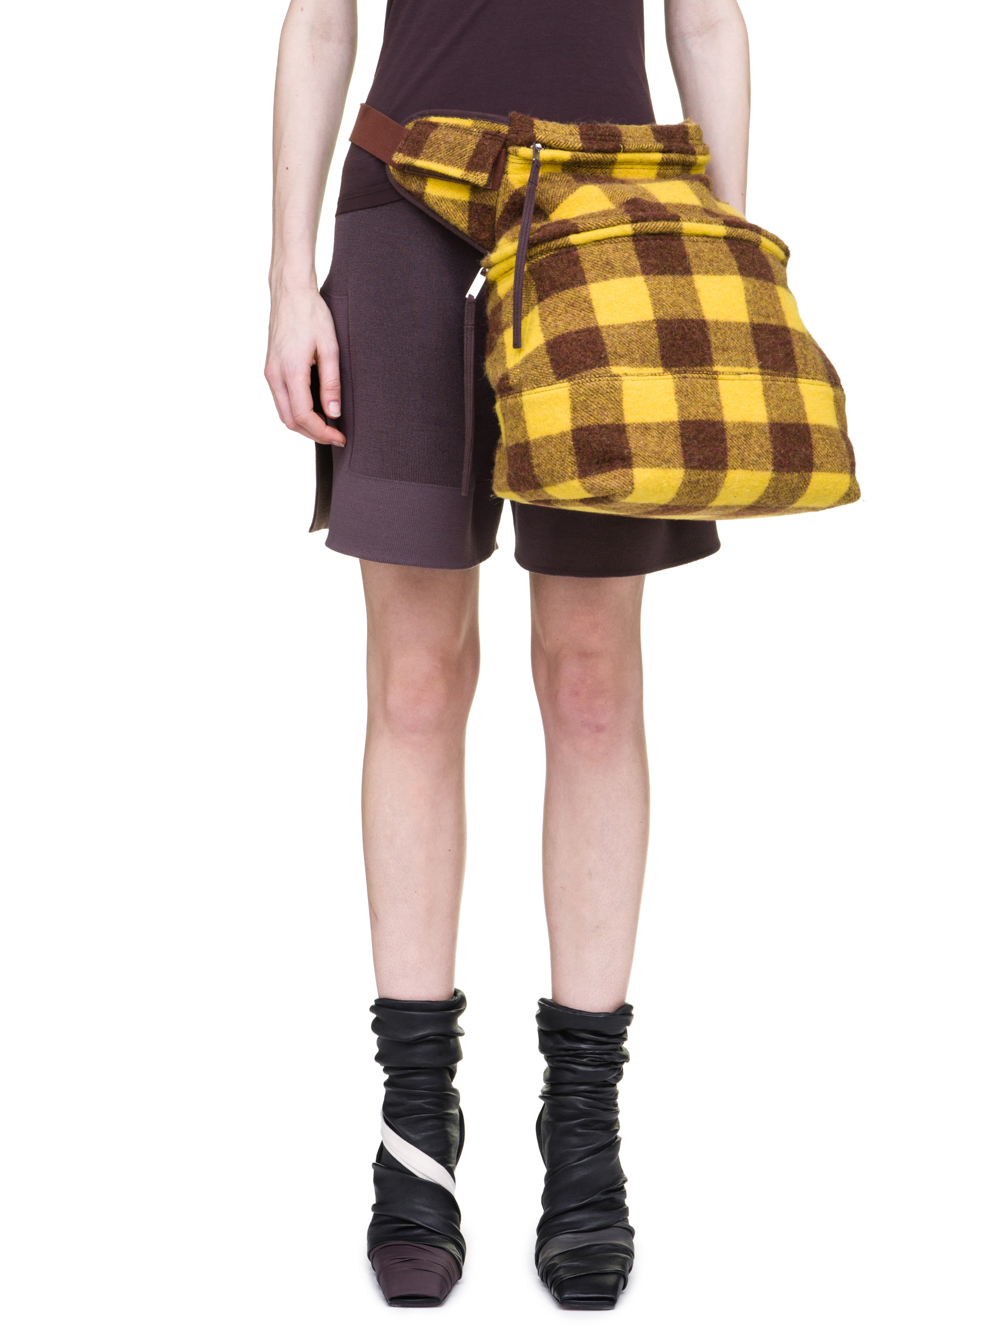 RICK OWENS OFF-THE-RUNWAY FERTILITY BELT IN RAISIN PURPLE AND YELLOW JUMBO PLAID